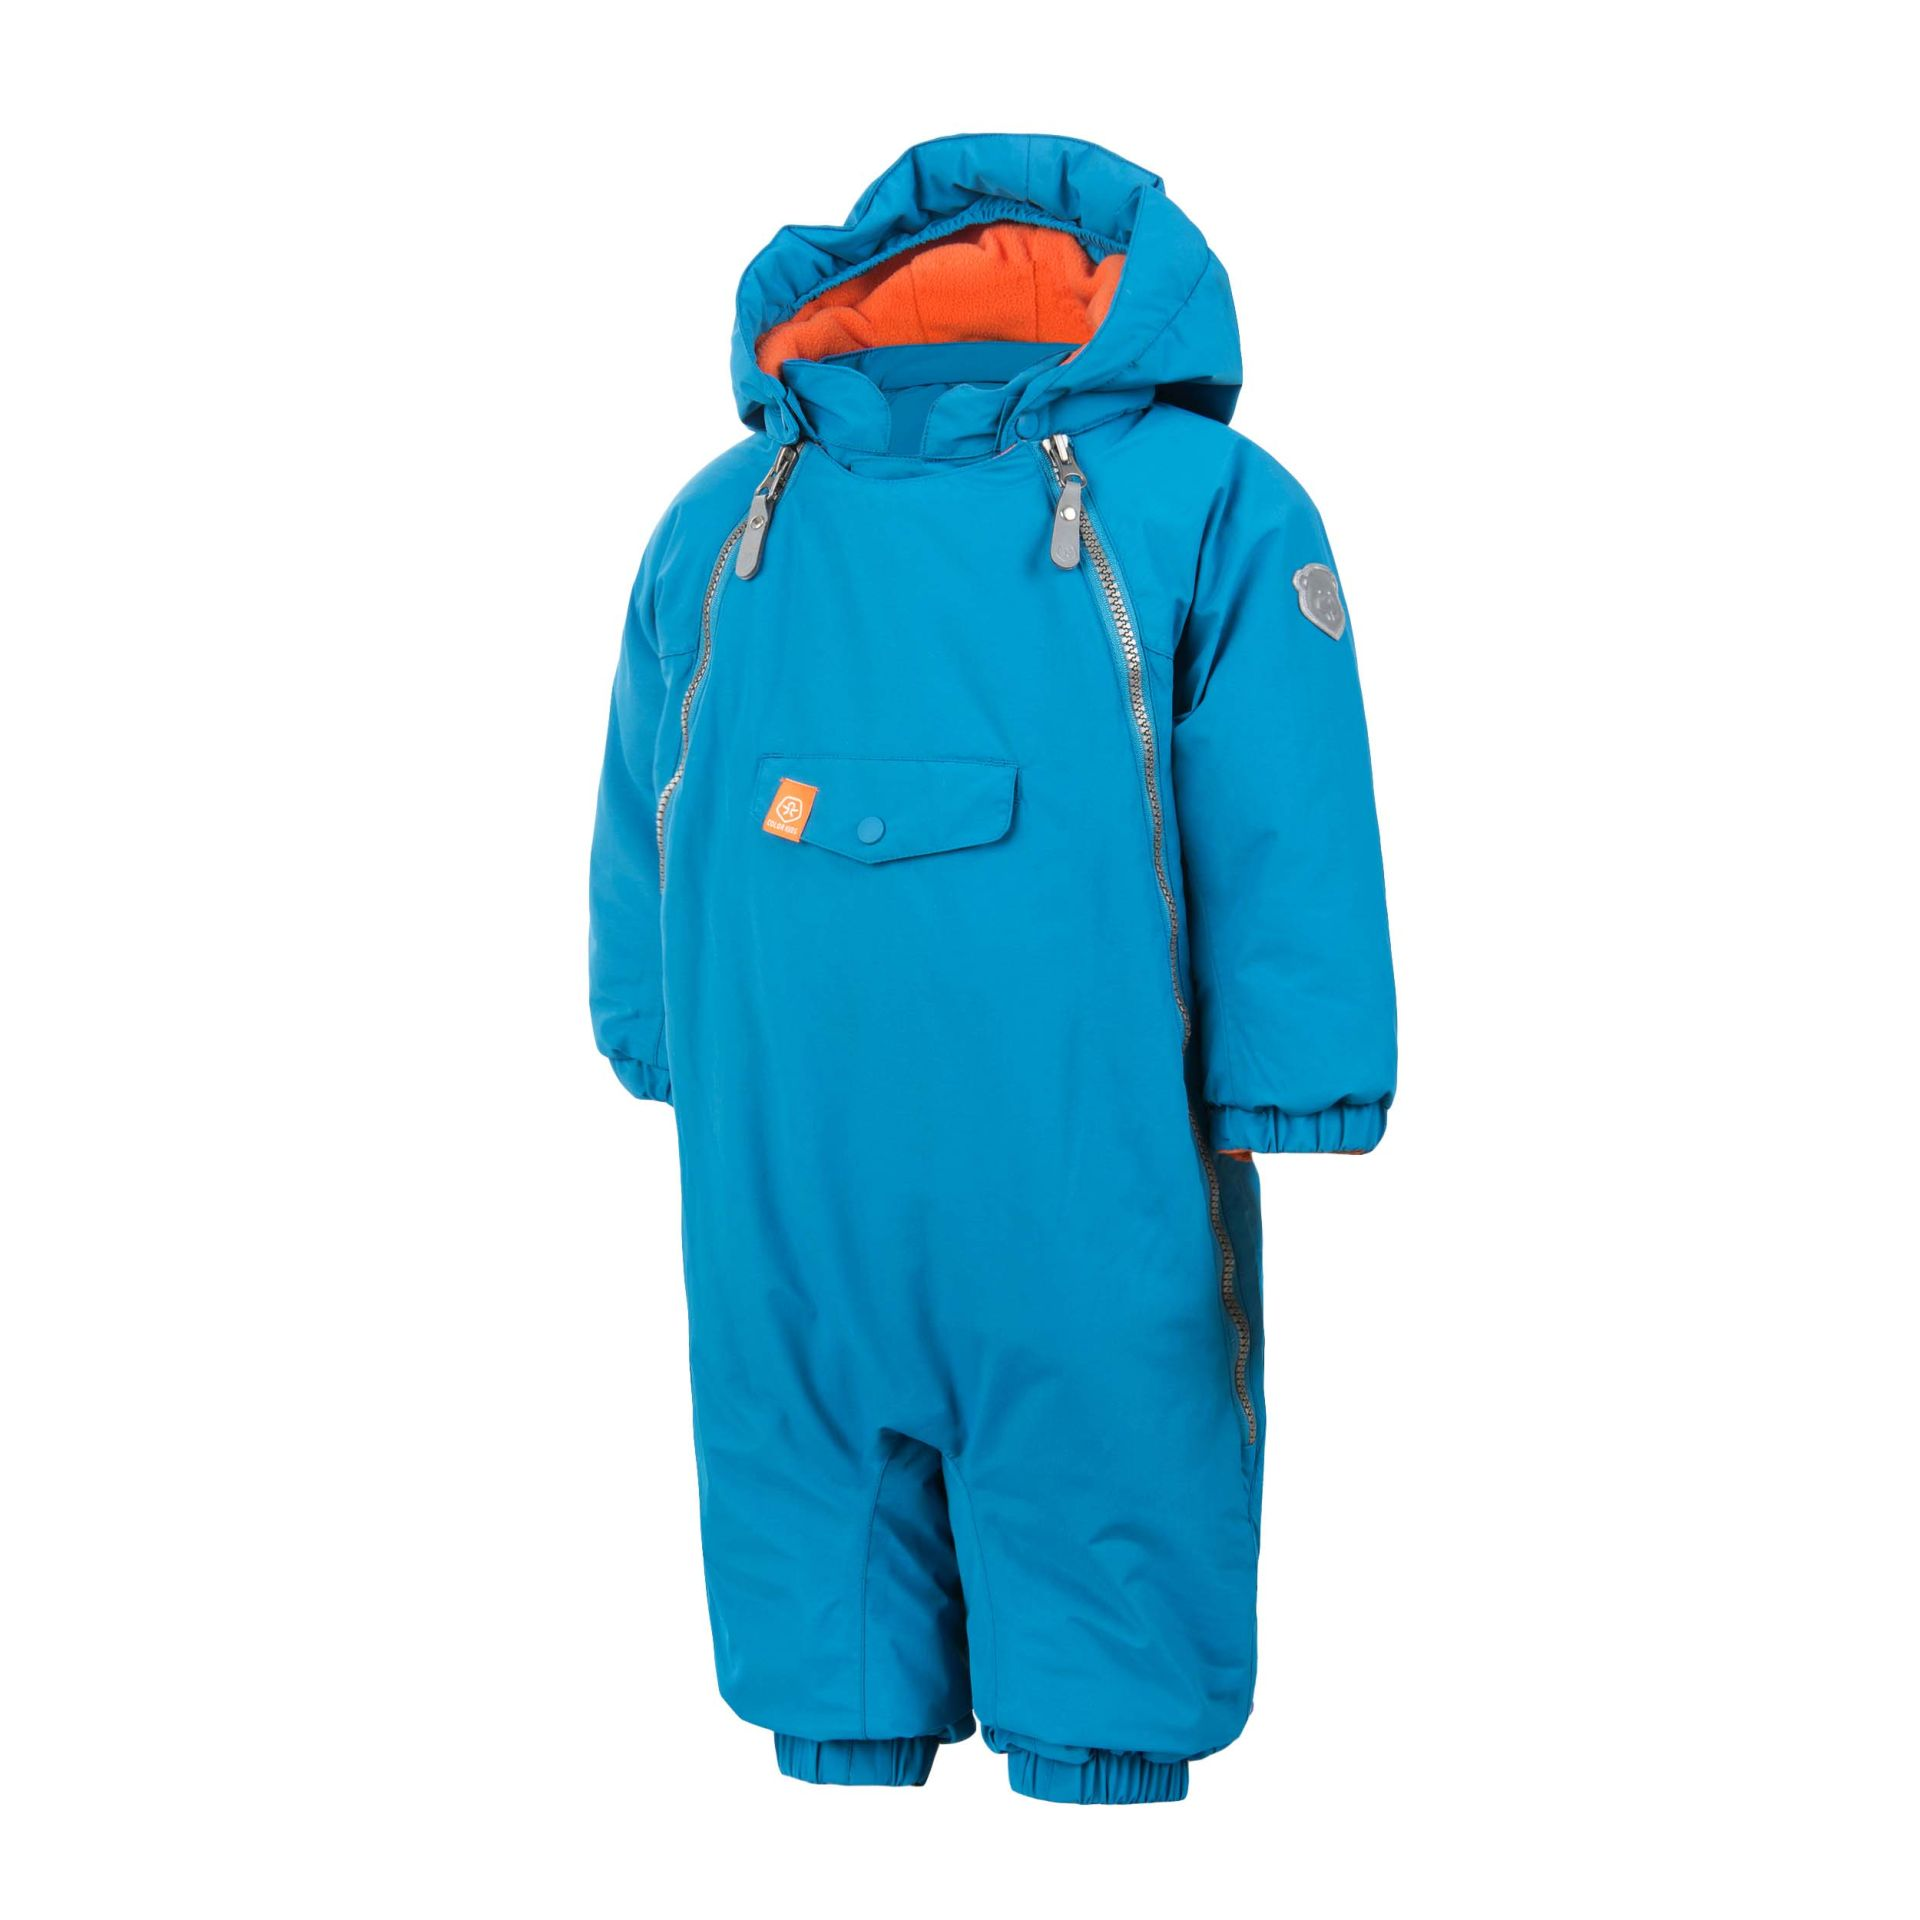 ead0995b5985 Full Snow Suits For Boys